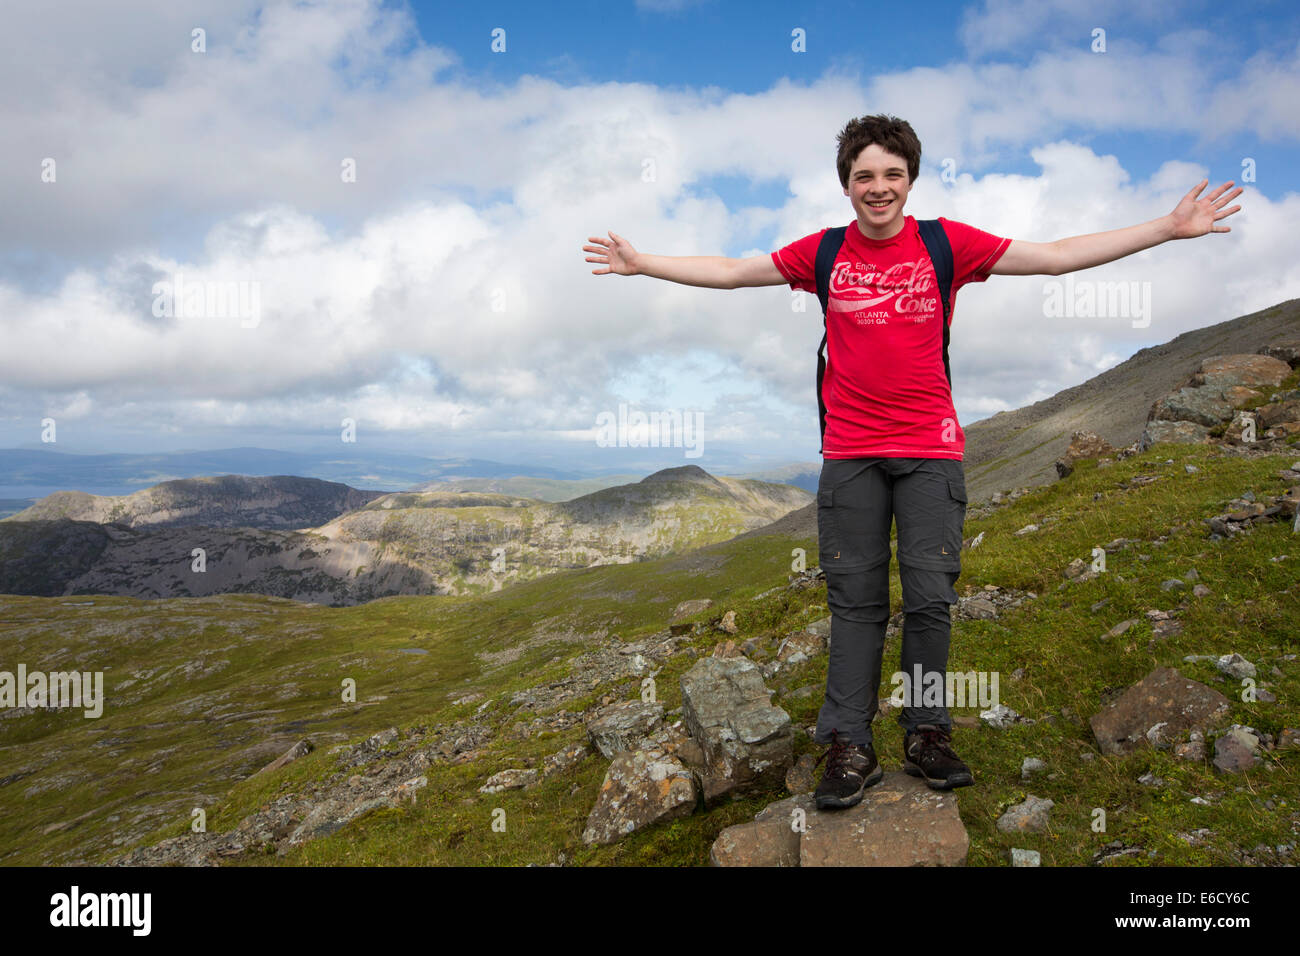 A teenage boy climbing Ben More, a Munro on the Isle of Mull, Scotland, UK. - Stock Image